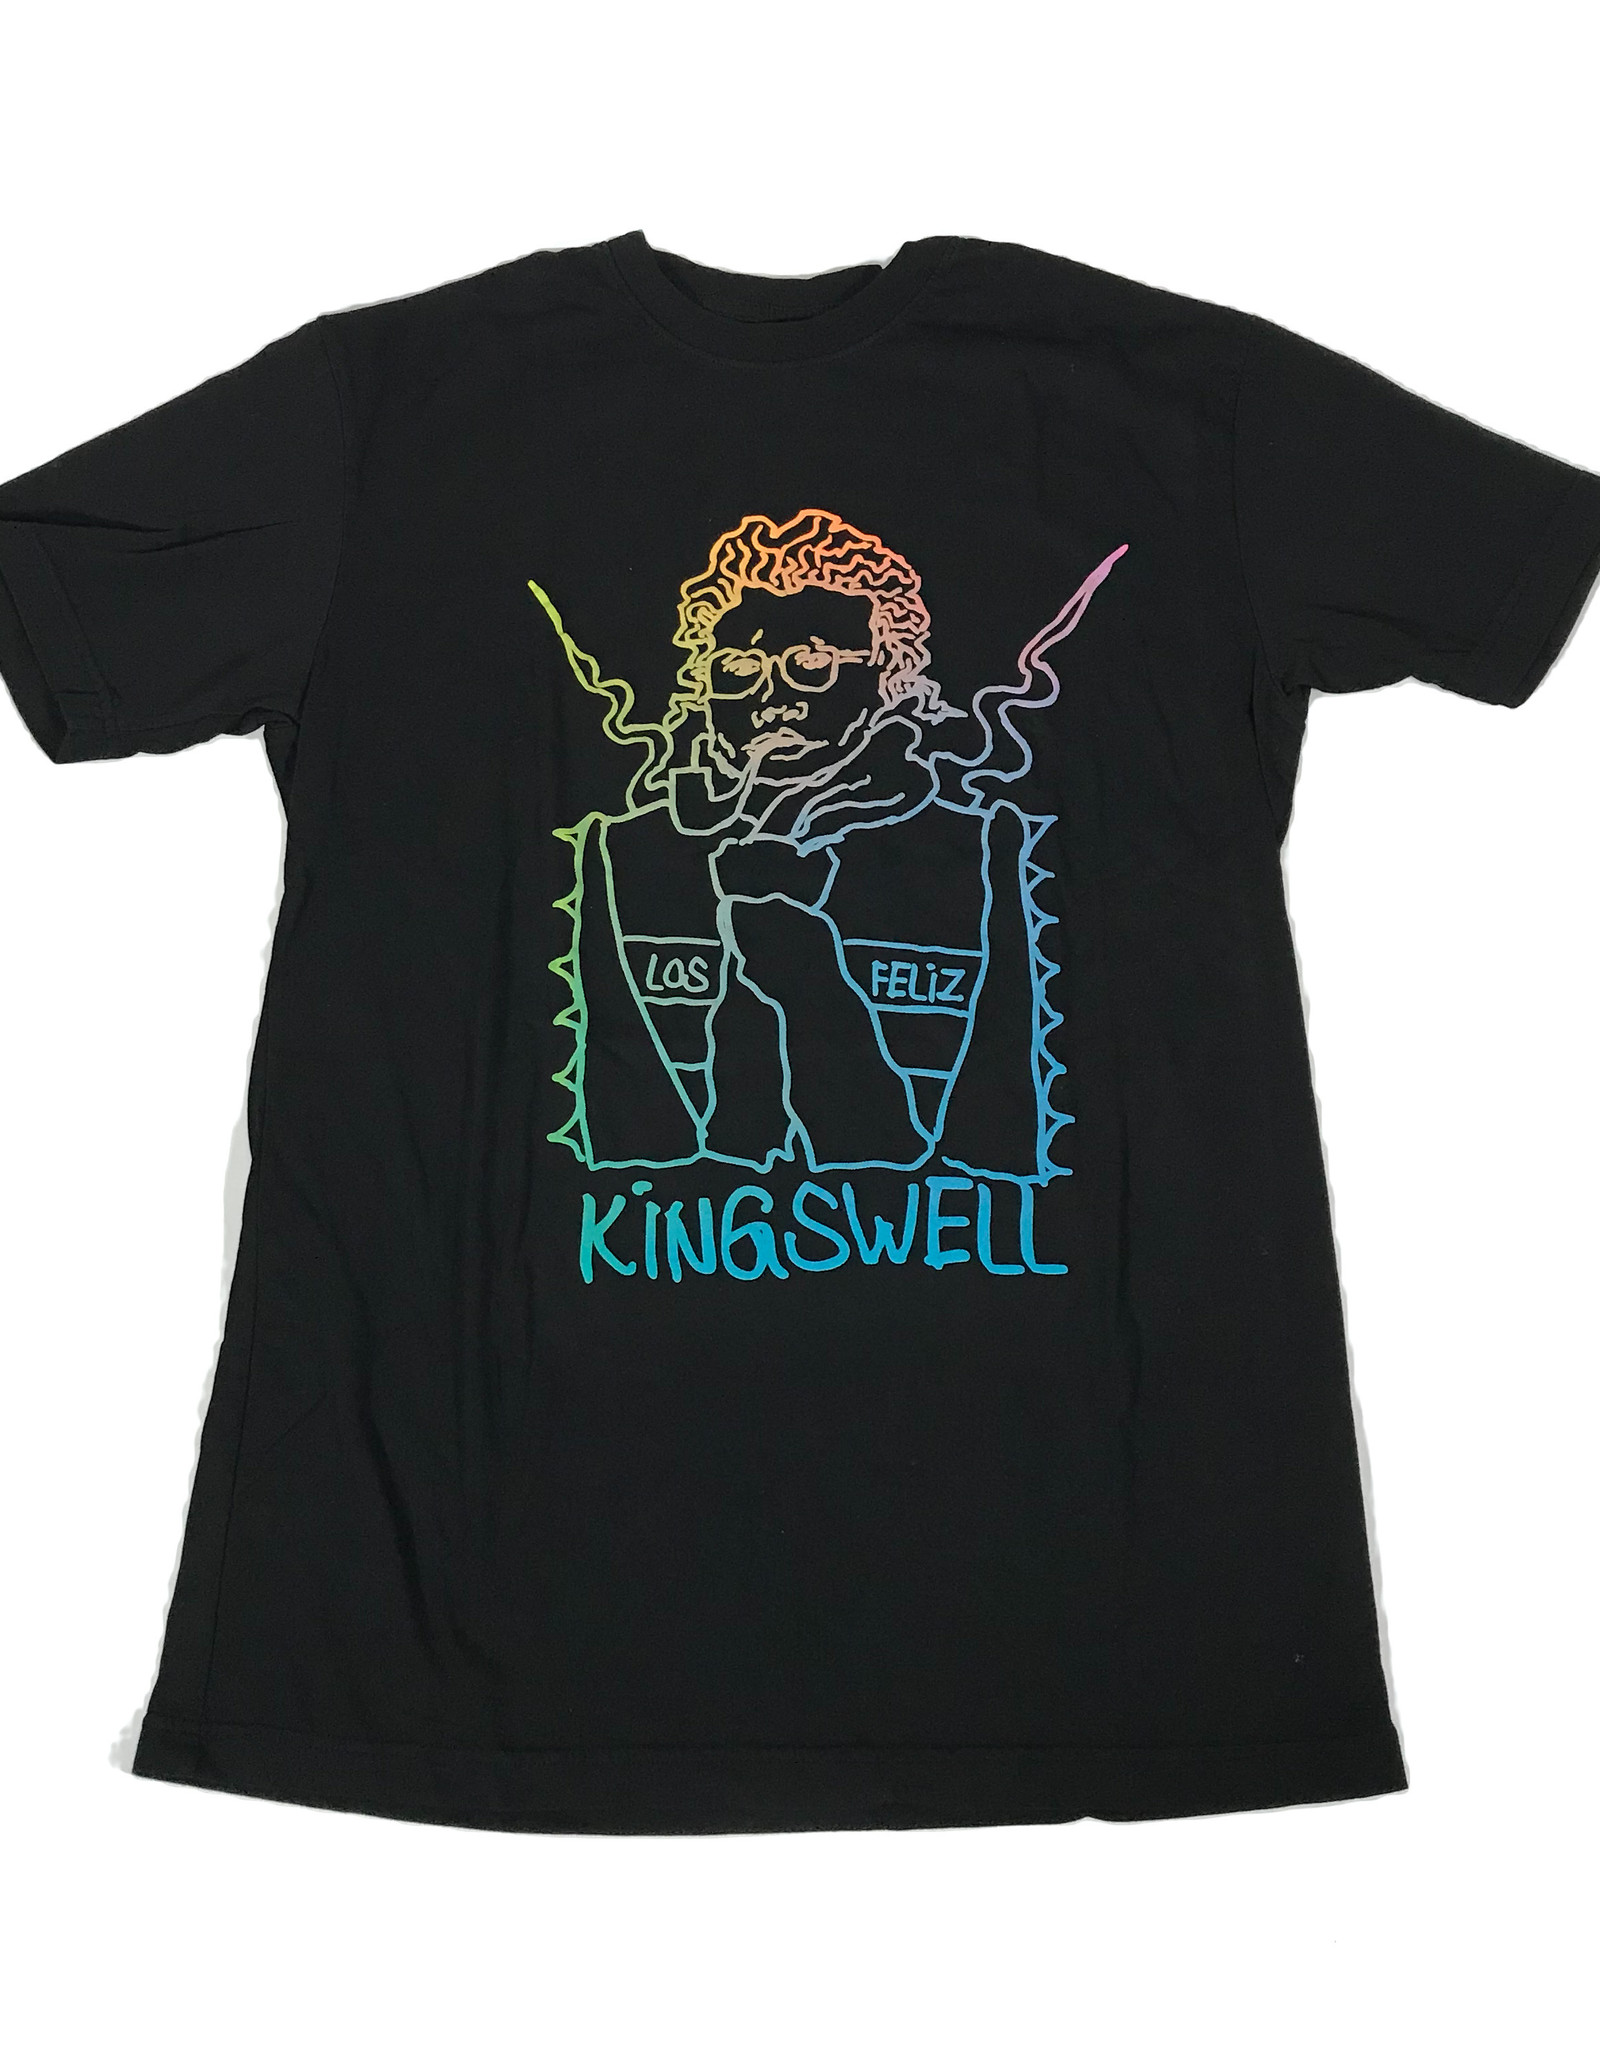 KINGSWELL KINGSWELL GONZ SKETCHY S/S TEE - BLACK